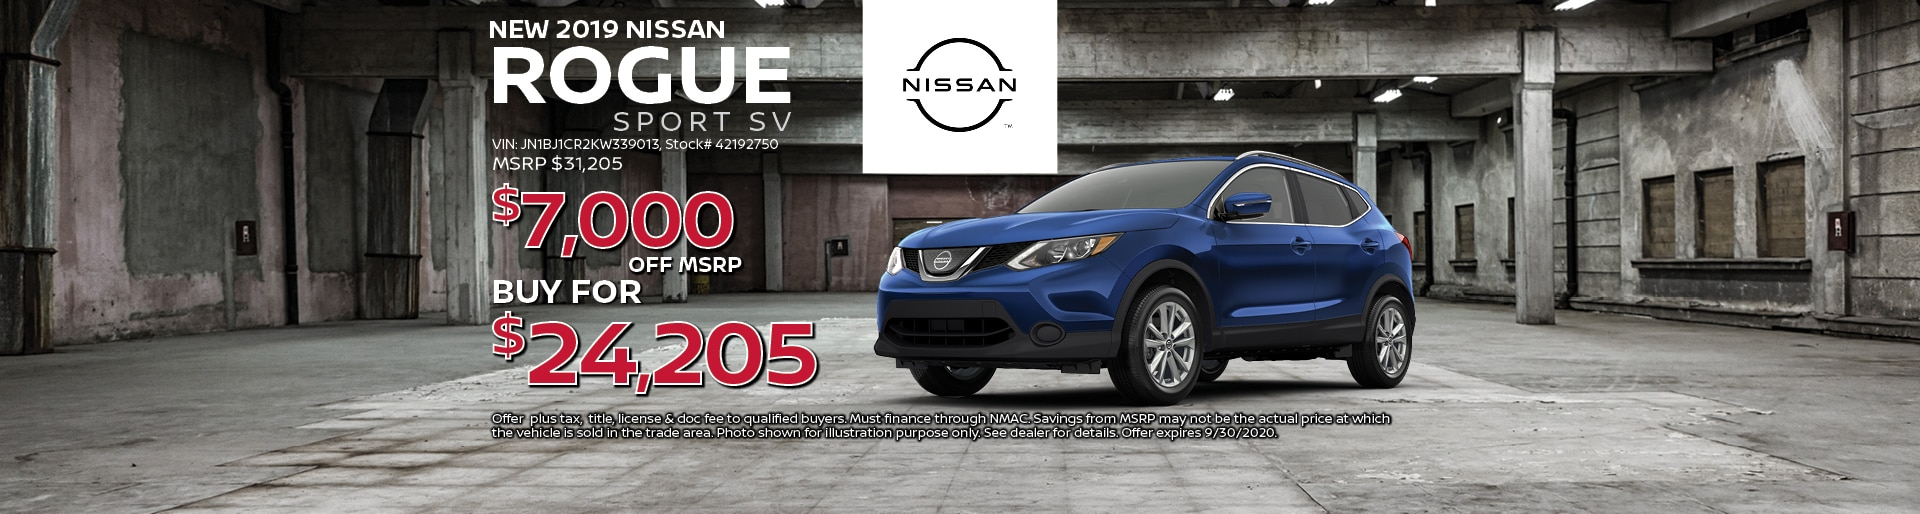 2019 Nissan Rogue Sport SV Special Offer| Lancaster, OH